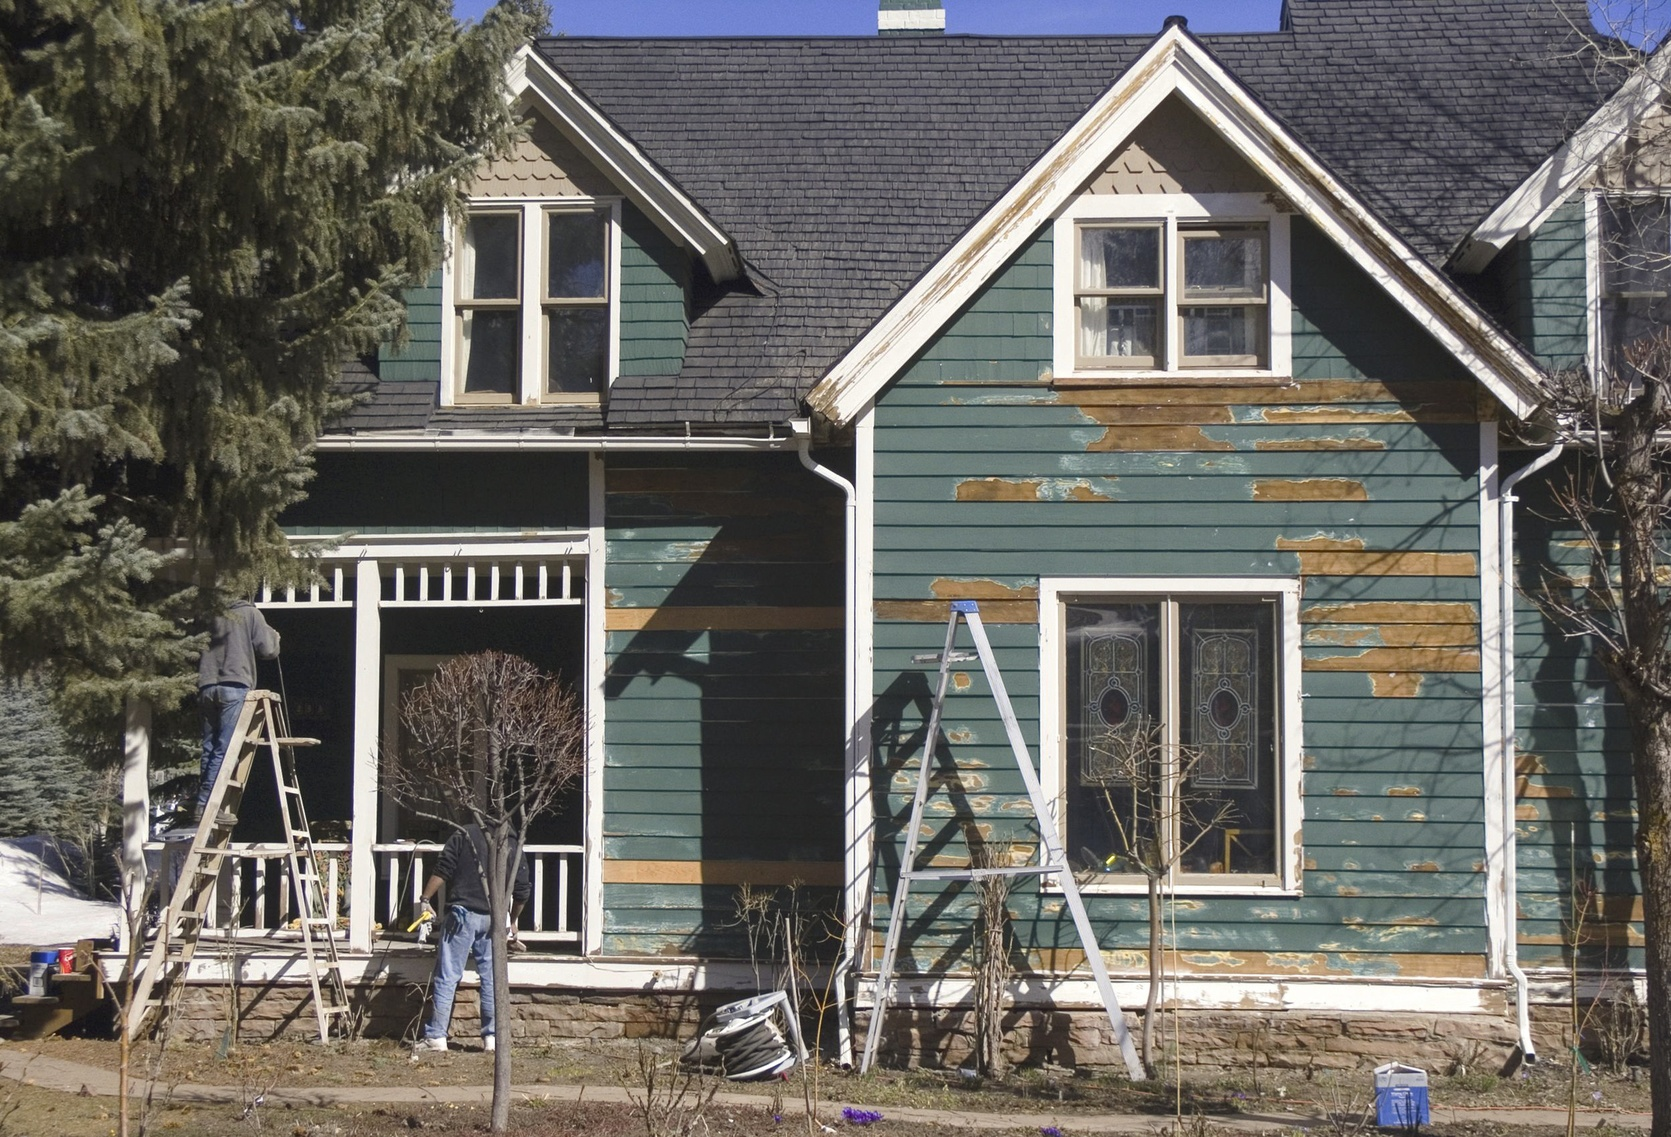 House that needs painting in Chandler